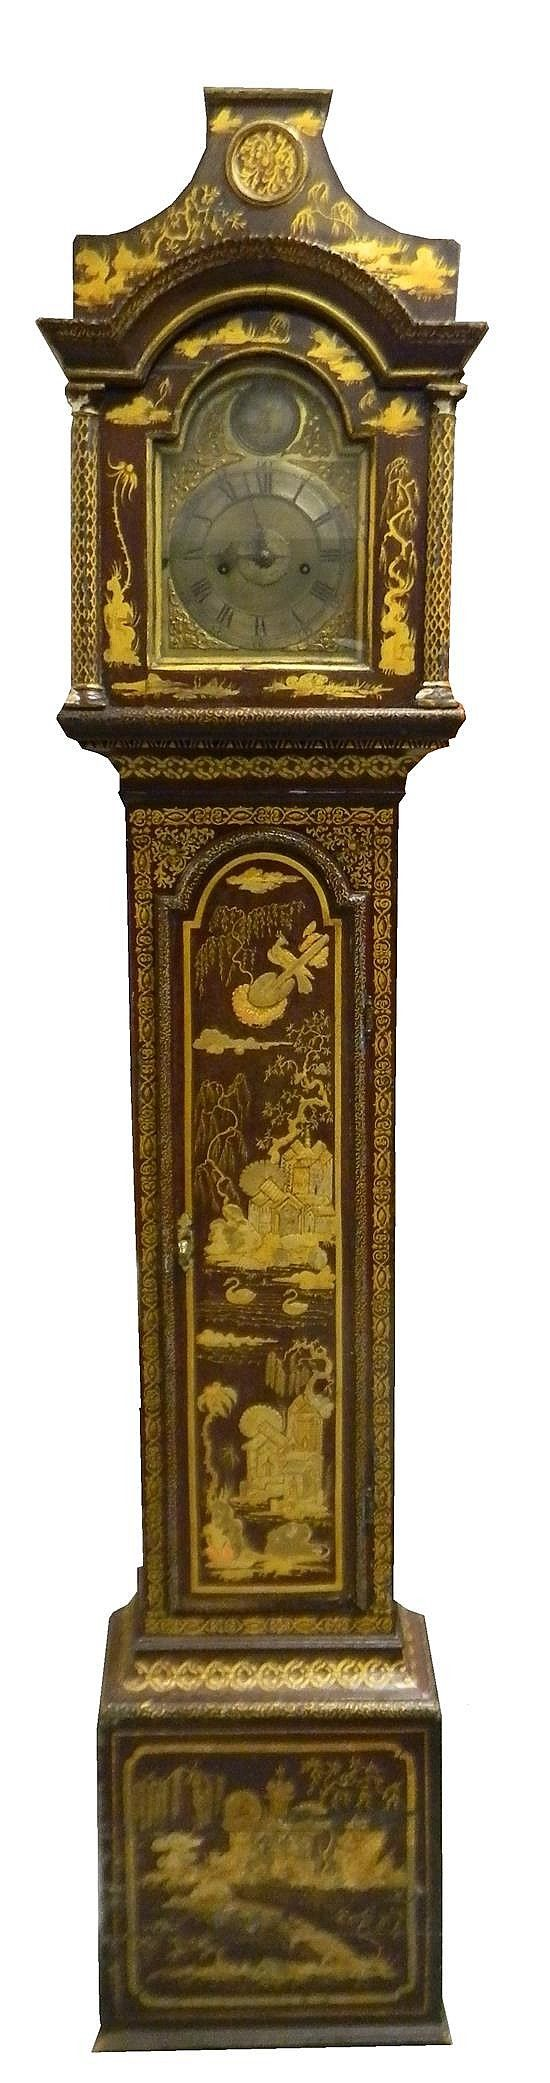 George Iii Chinoiserie Japanned Longcase Clock English, Columns And Arches On Pinterest